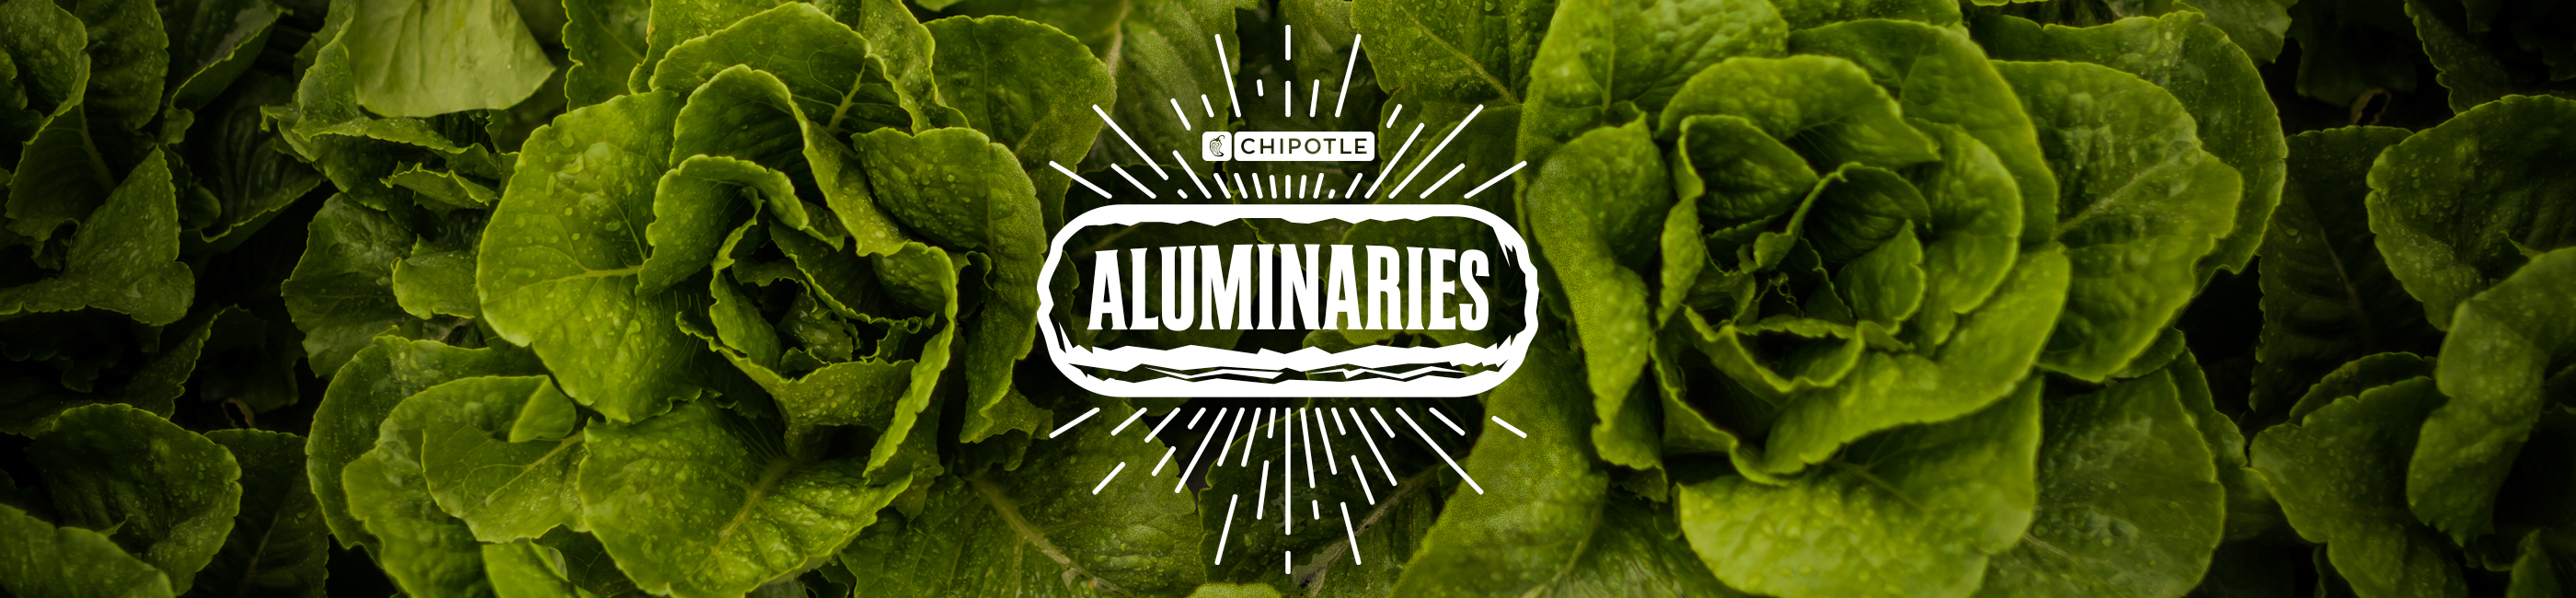 photo of chipotle's aluminaries landing page